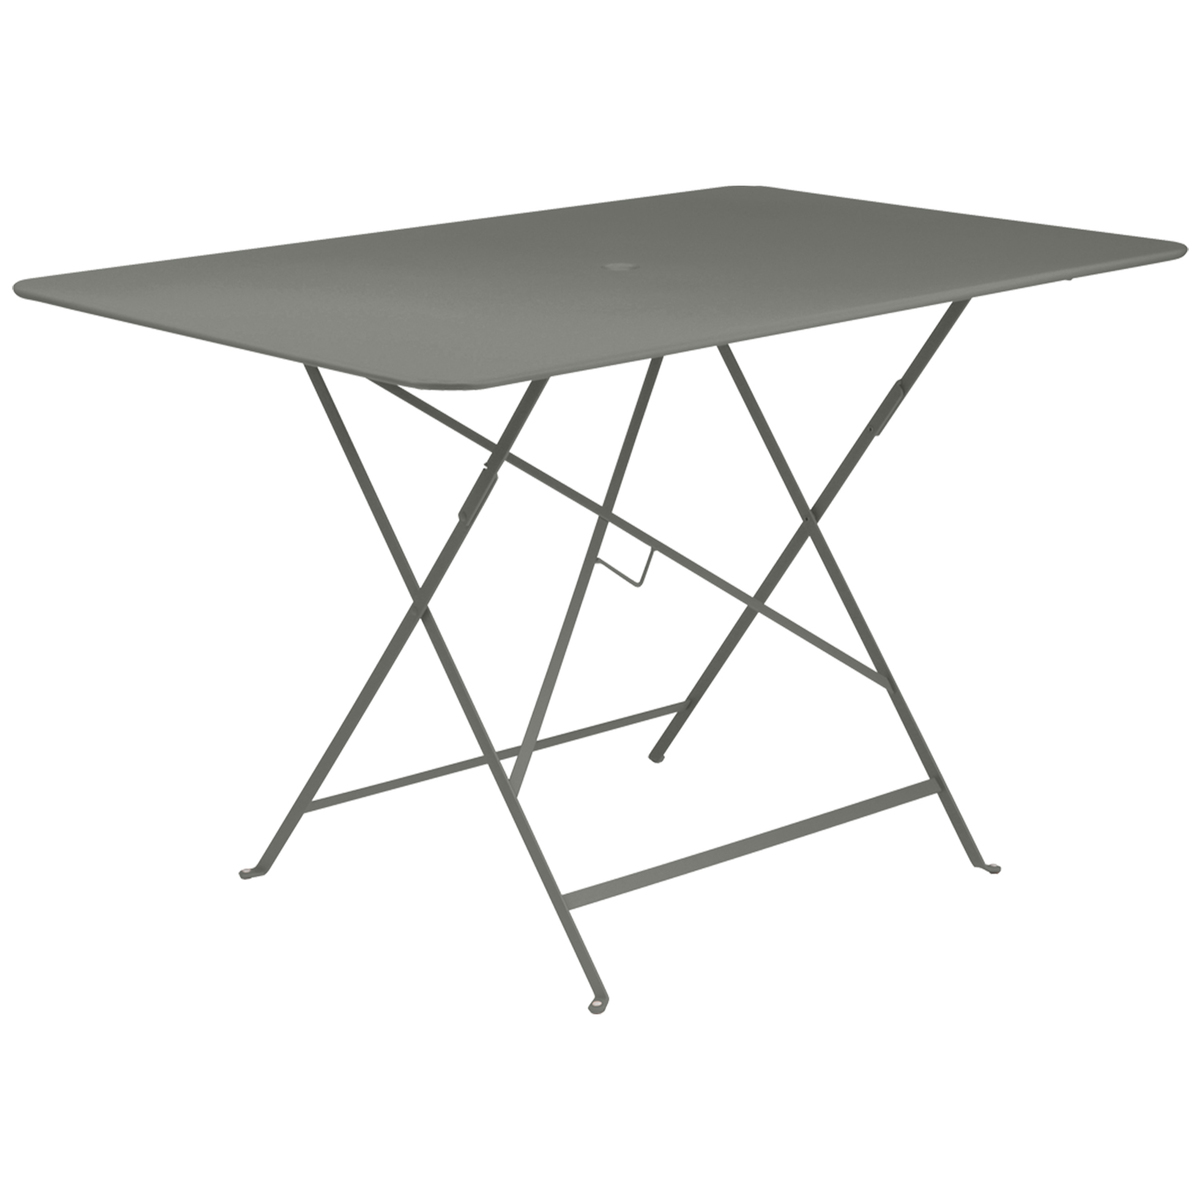 Fermob Bistro table 117 x 77 cm, rosemary from Fermob